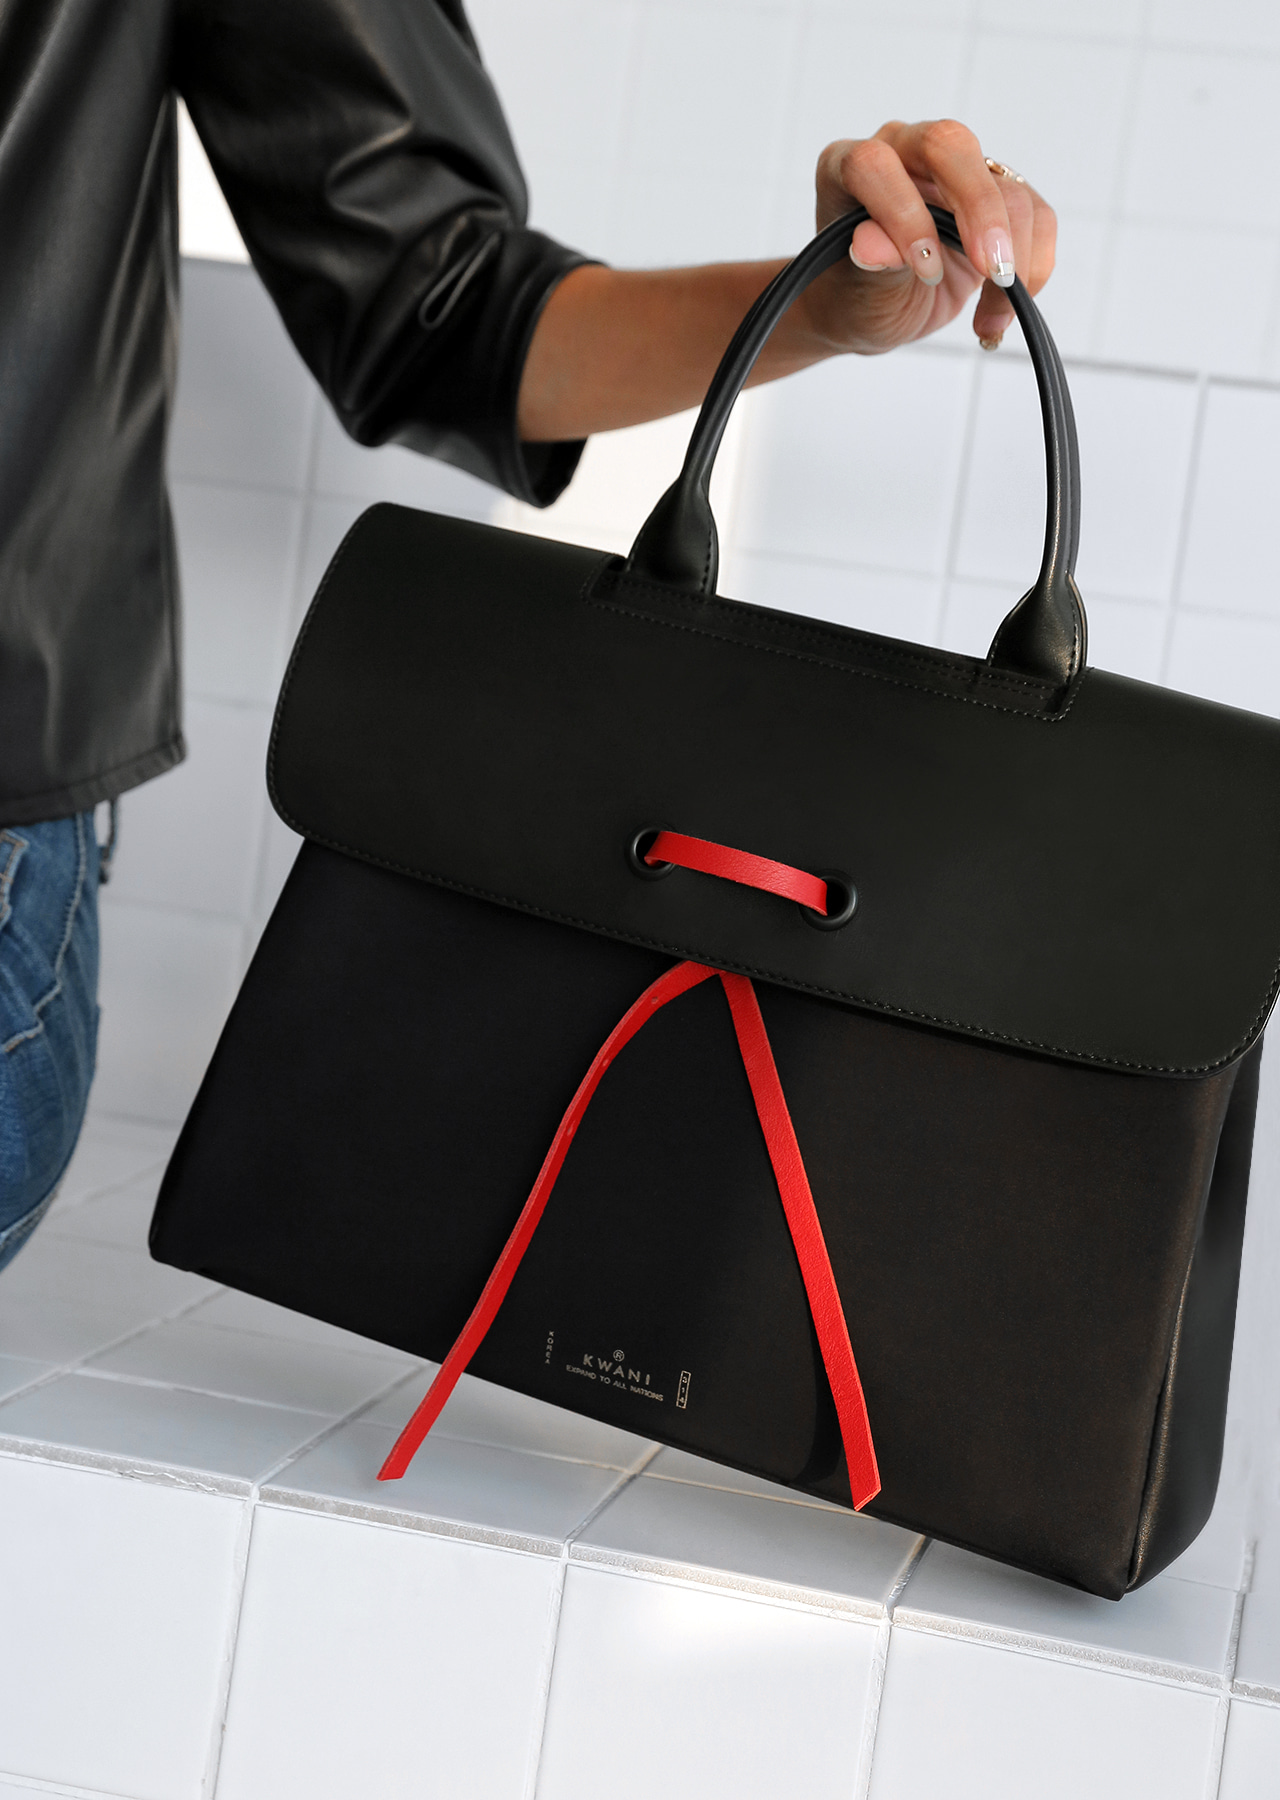 All New All Chic! New KWANI Bag Release!